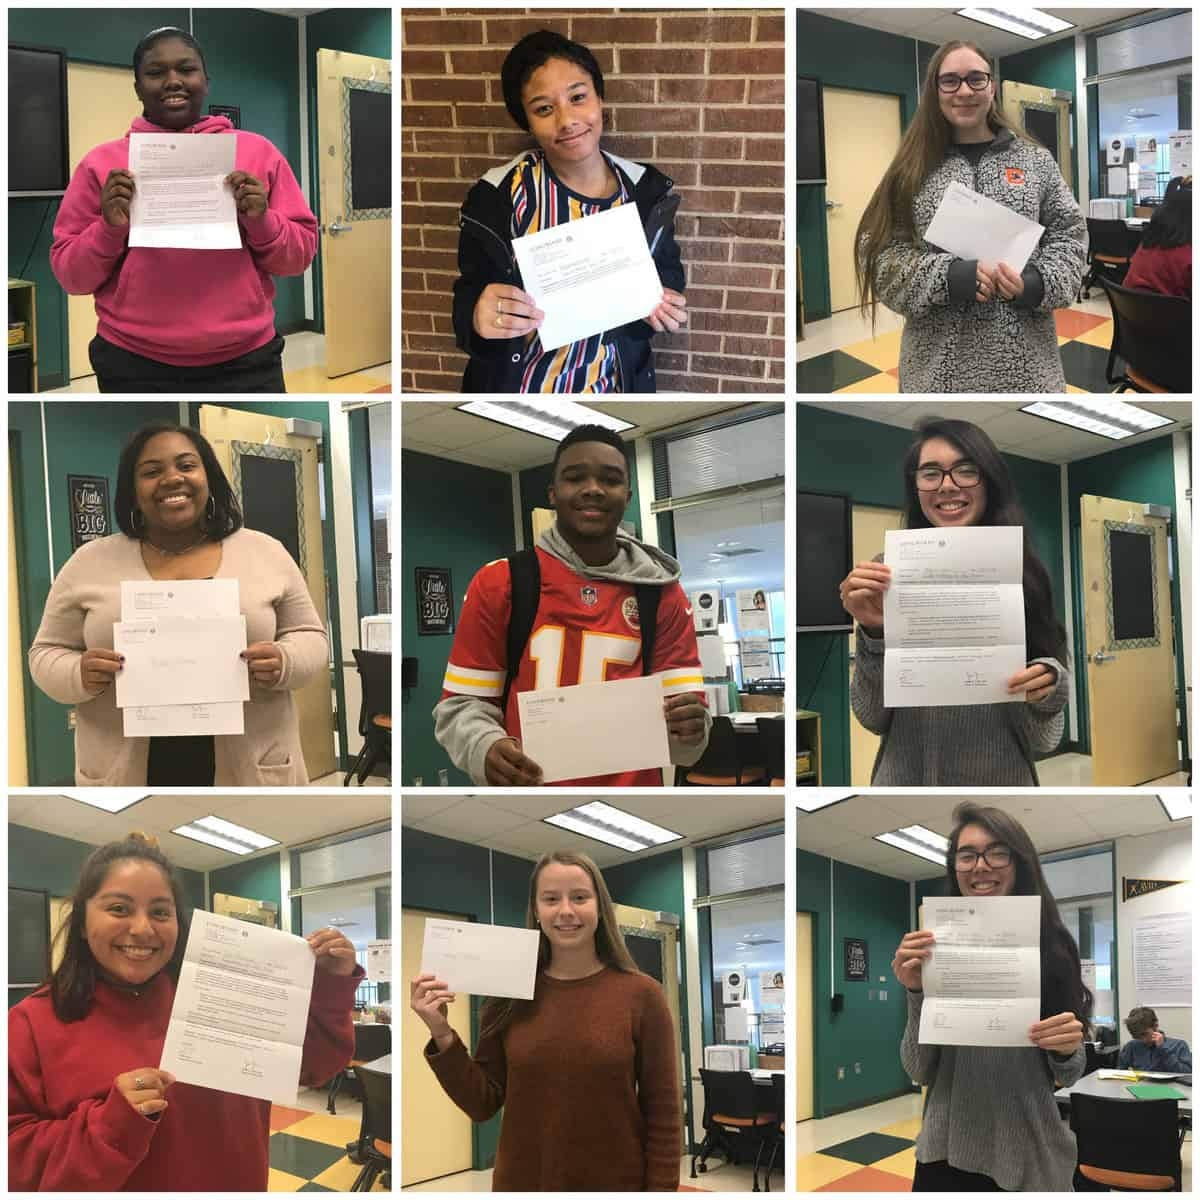 photo collage of students holding admissions letters from Radford and Longwood